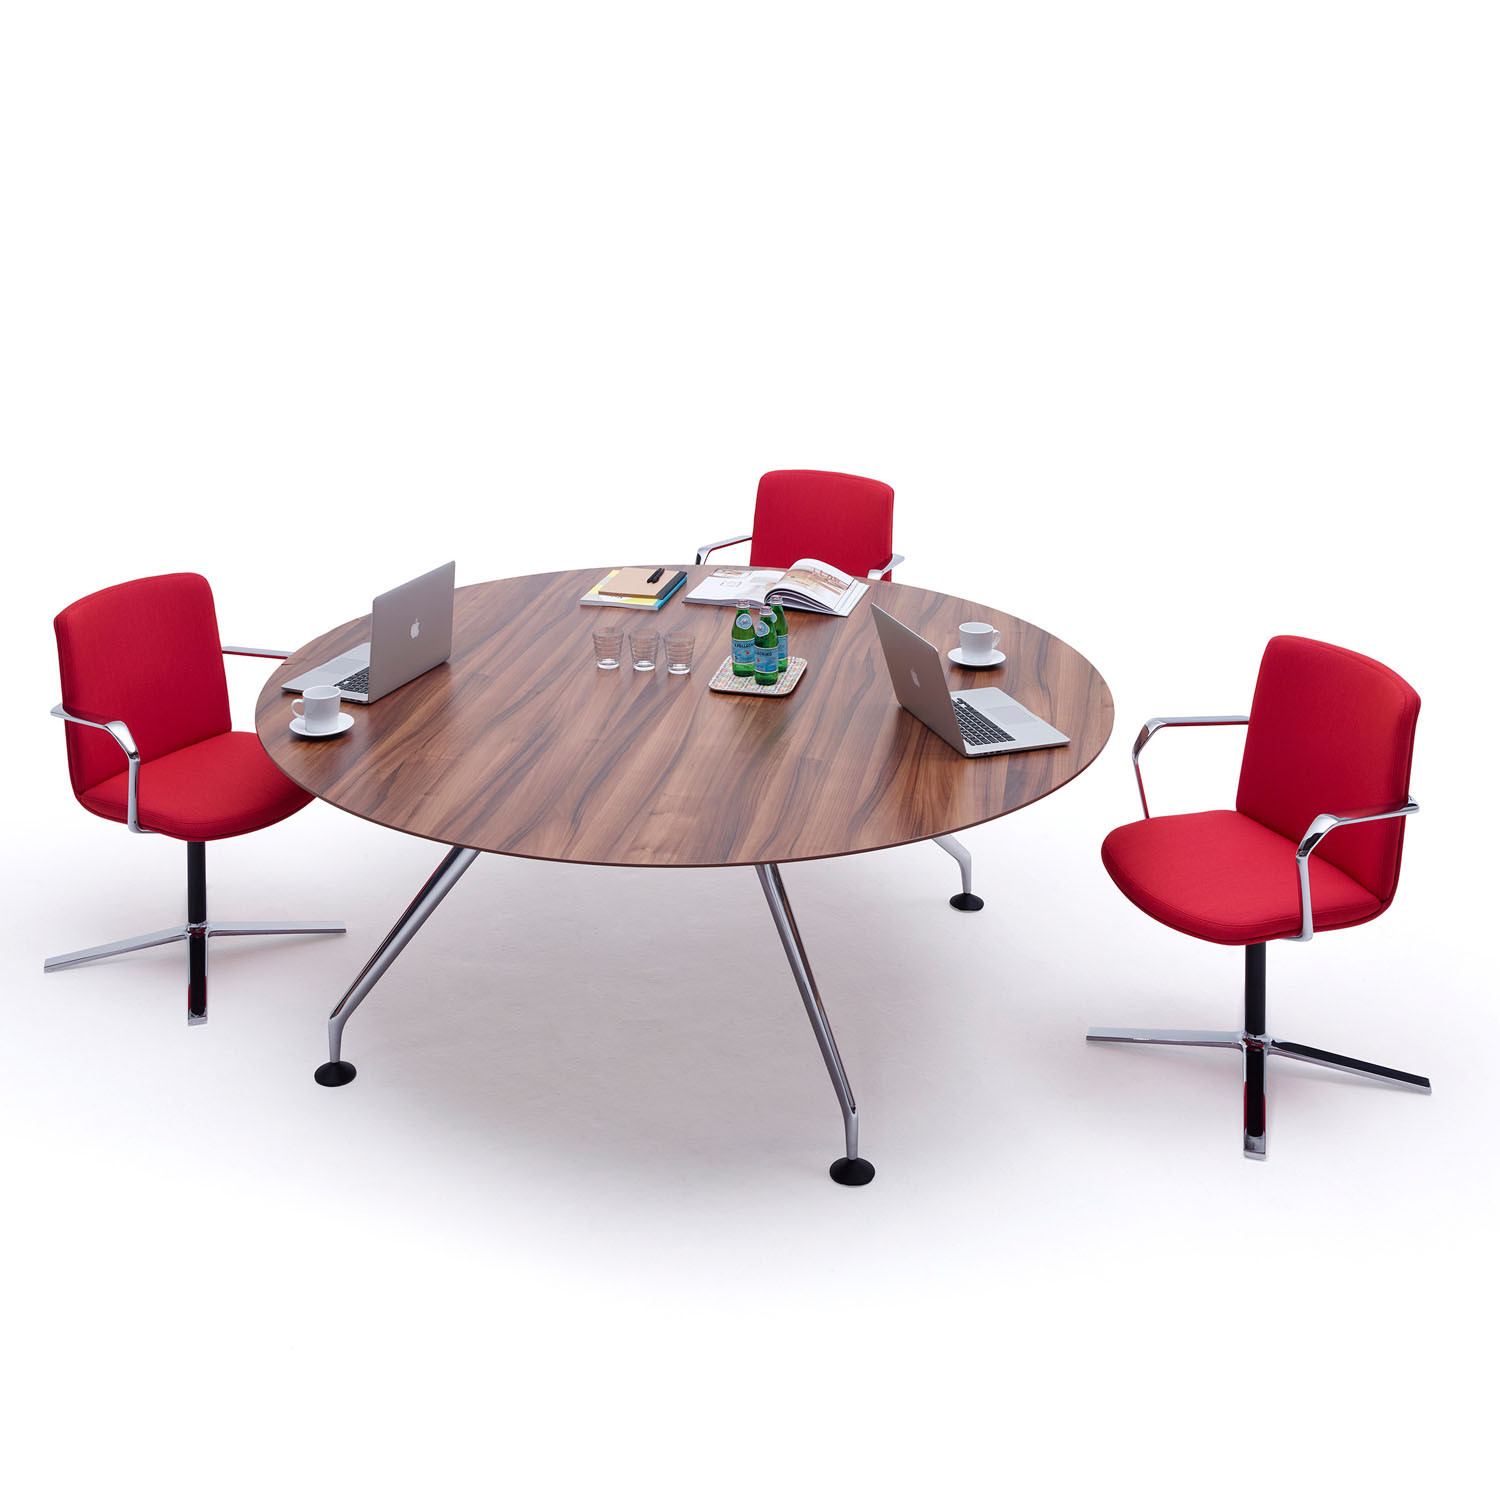 Lano Round Meeting Table